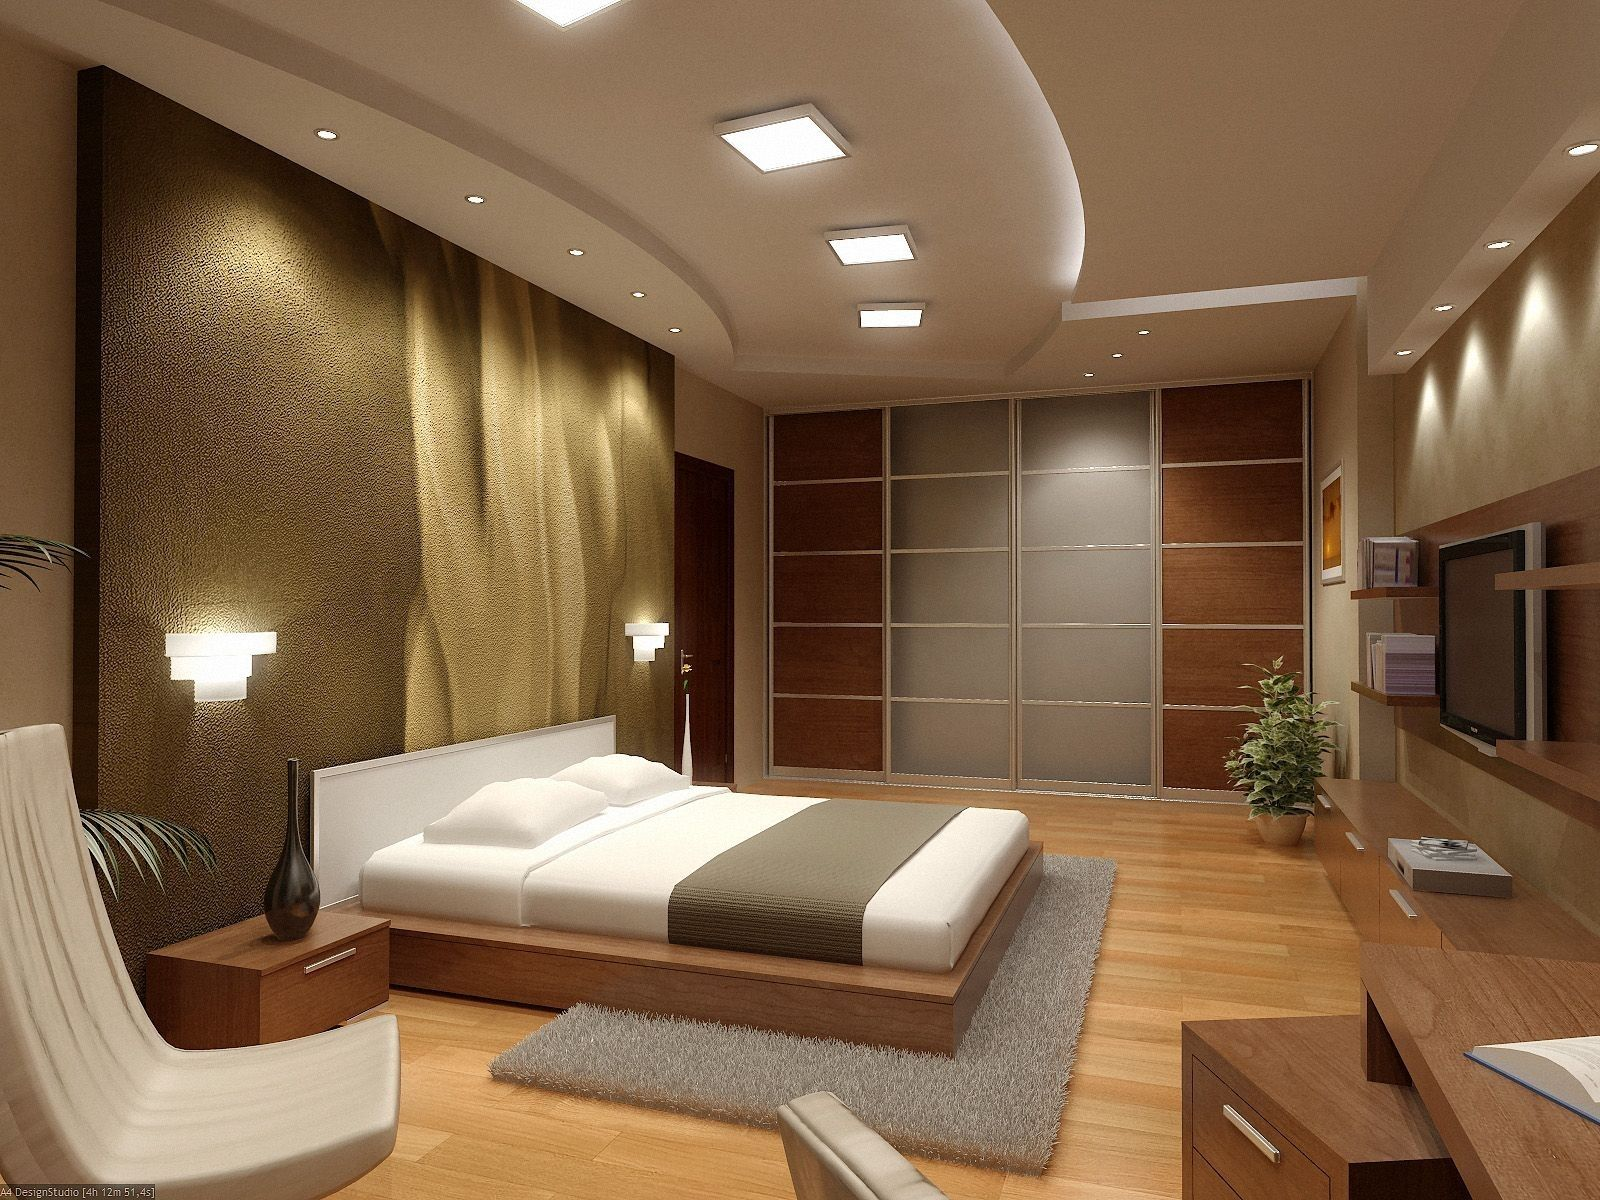 Online Bedroom Design Captivating Bedroom Design Online Free Bedroom Design Online Free Free Images Design Ideas